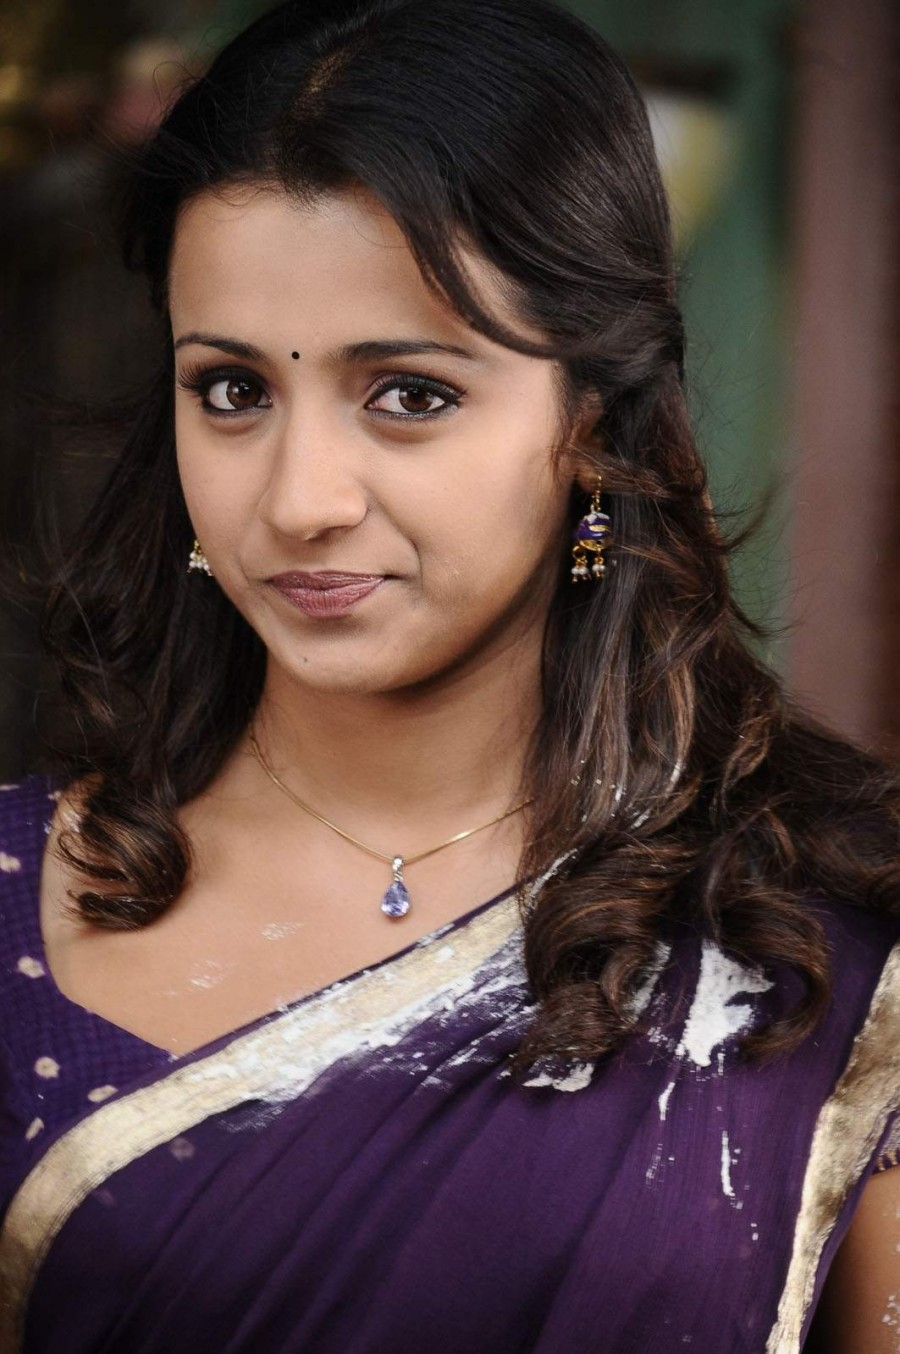 Trisha,Happy Birthday Trisha,Trisha Krishnan,actress Trisha,Trisha pics,Trisha images,Trisha photos,Trisha stills,hot Trisha,Trisha hot pics,Trisha latest pics